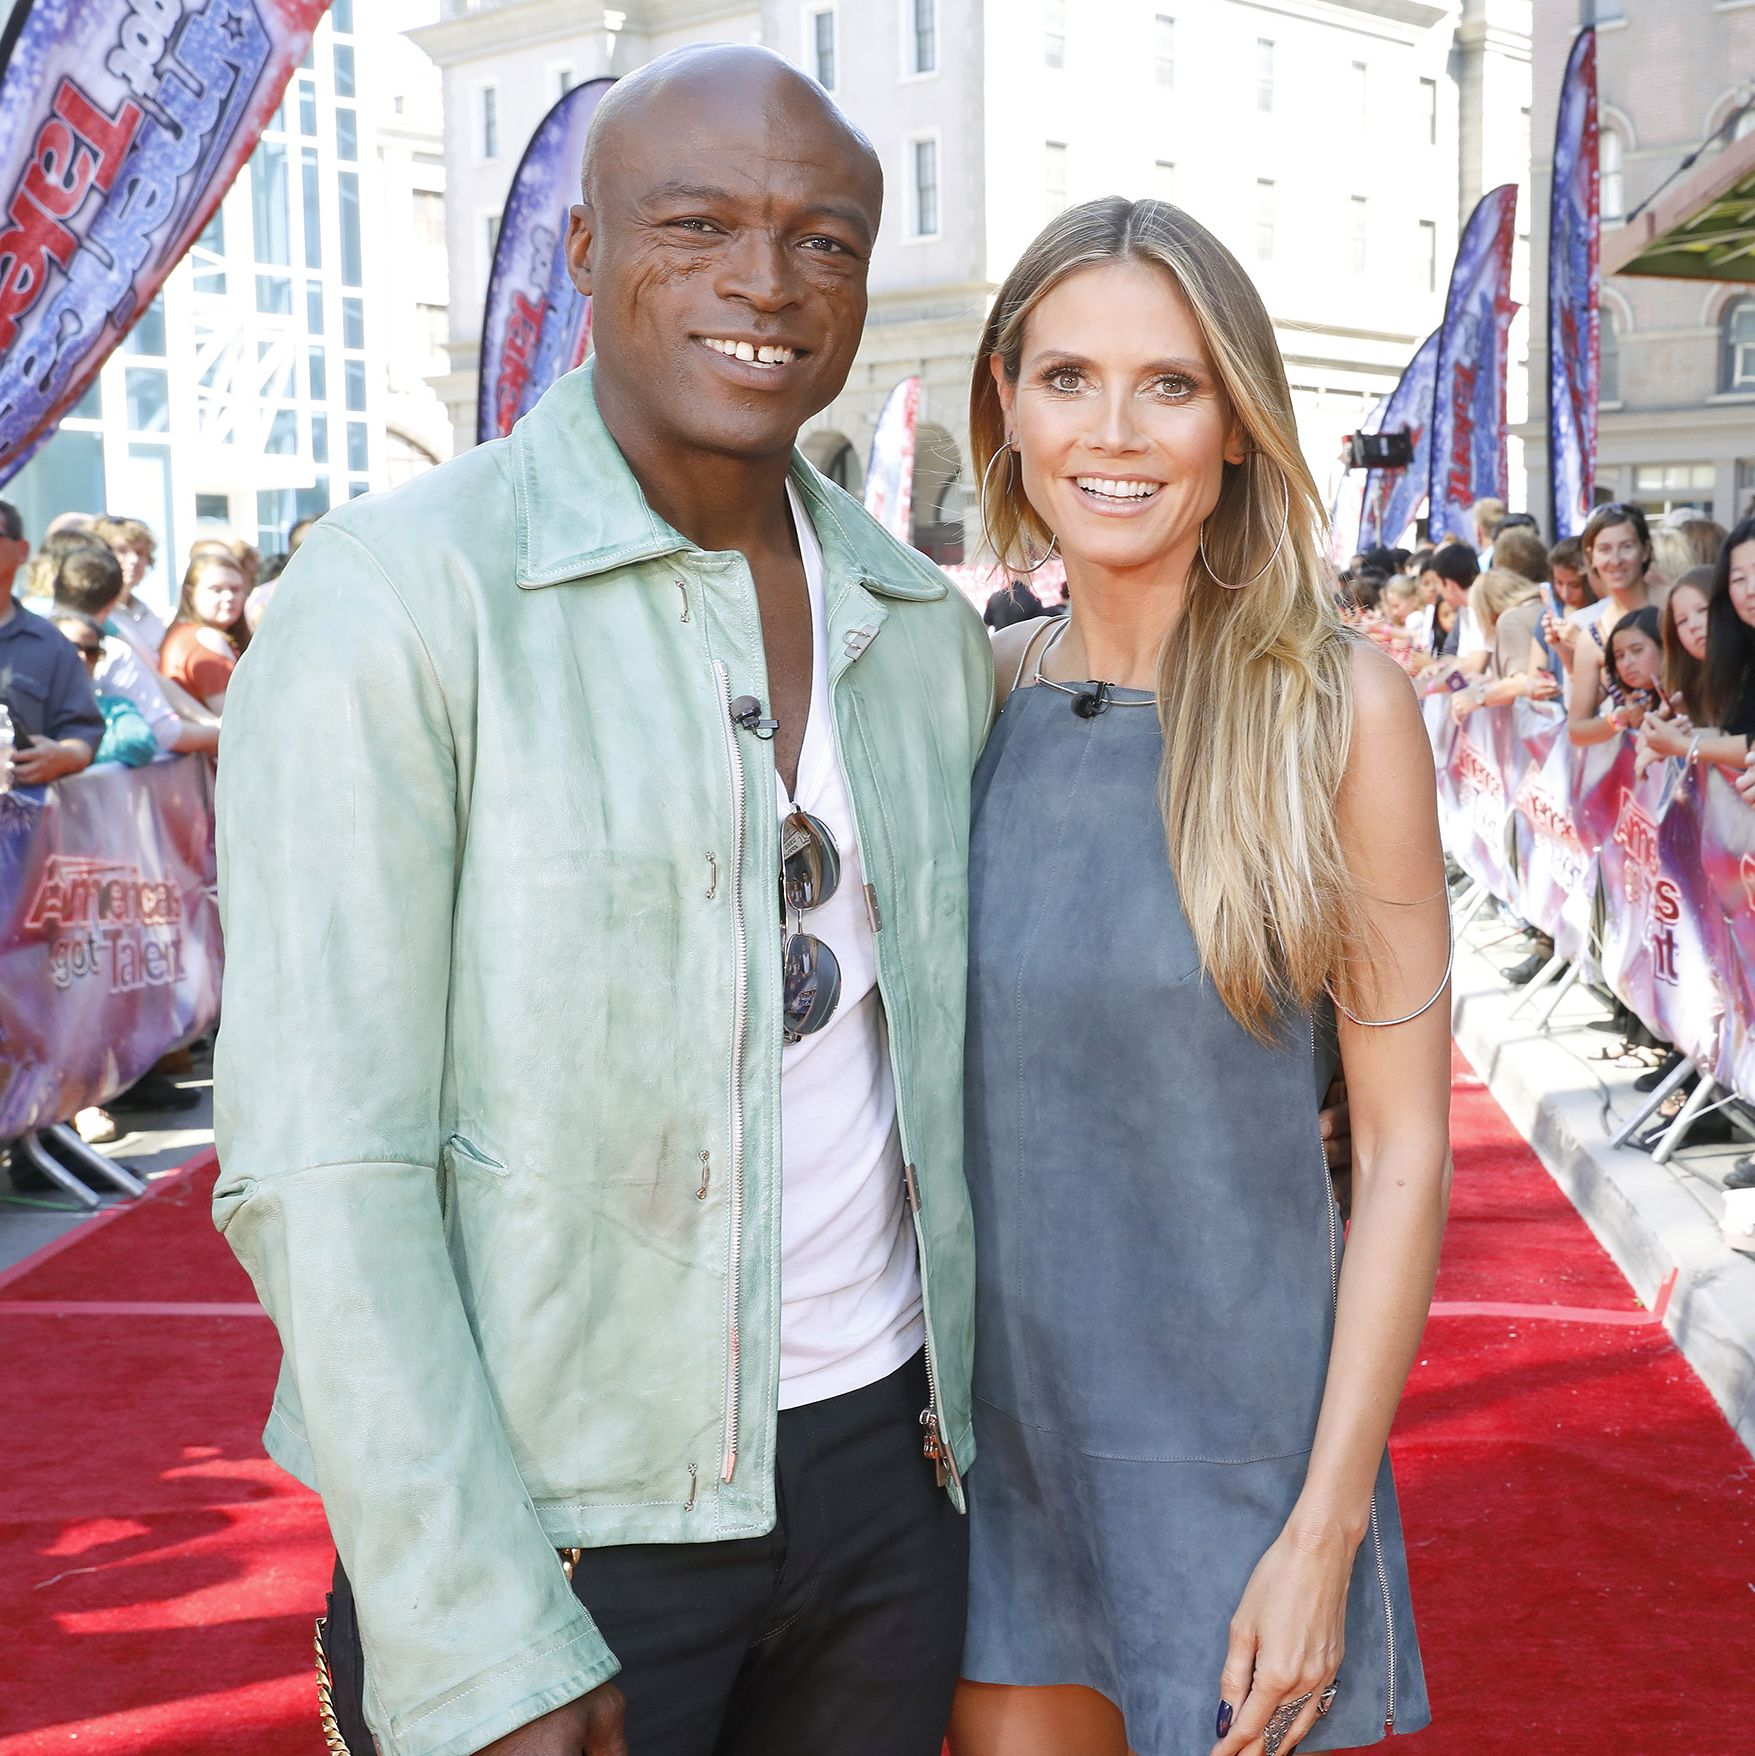 Seal and Heidi Klum People loved Heidi and Seal for how fun, in love, and compatible they seemed. Seal adopted and raised Heidi's daughter Leni, and the couple had three biological children together.